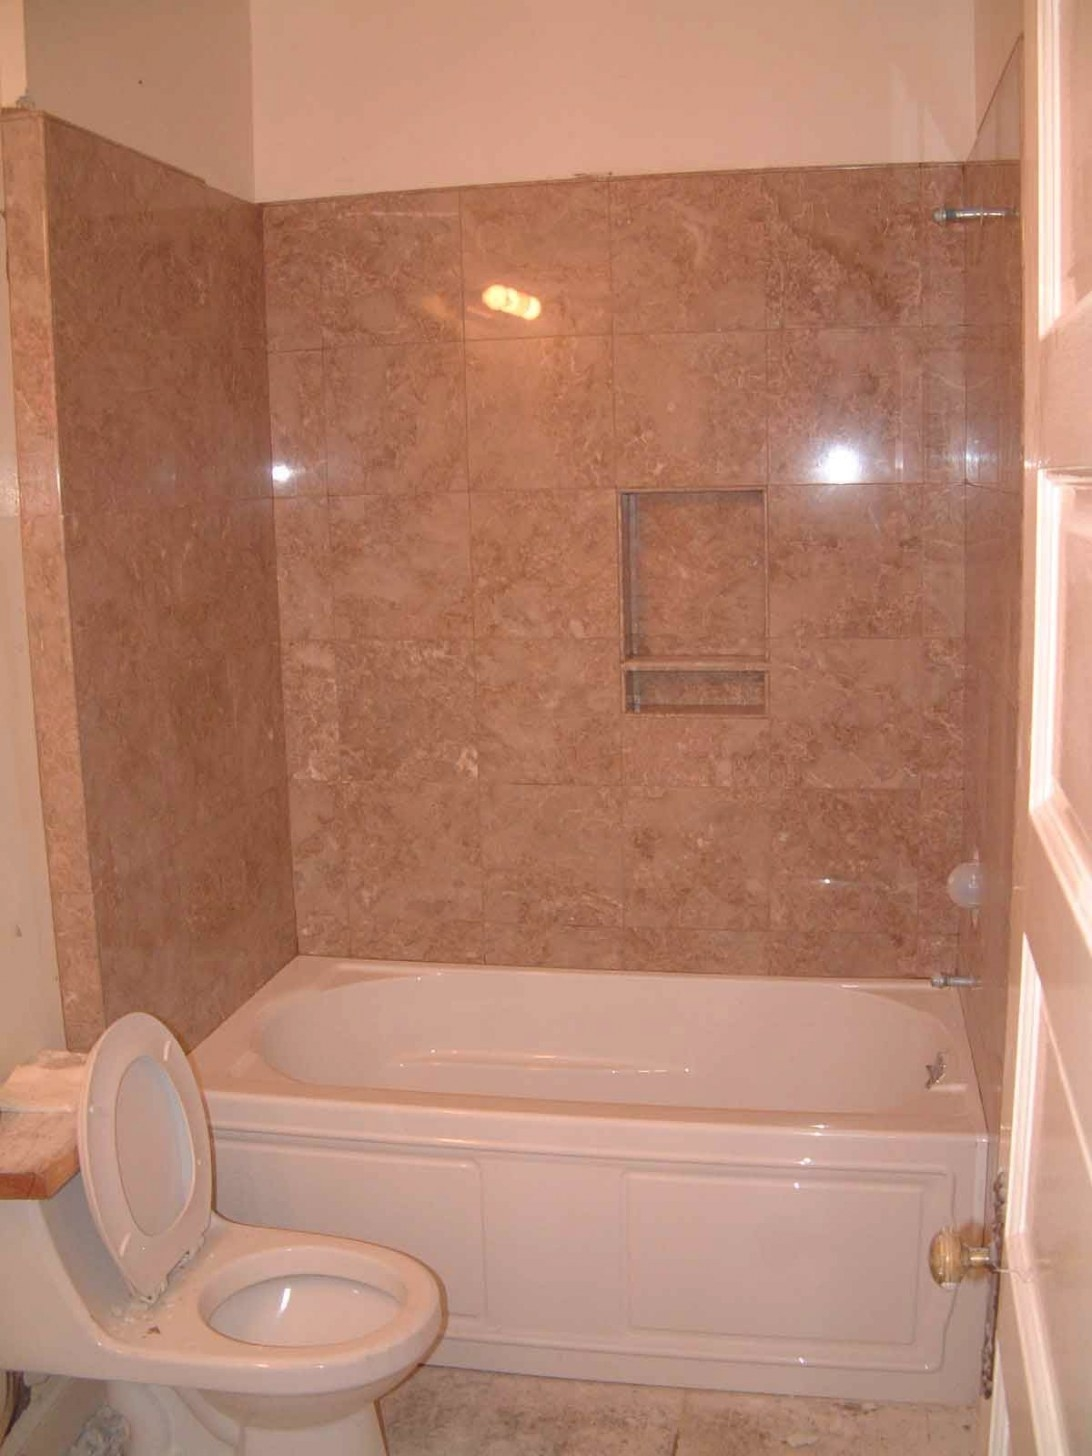 Bathroom Remodeling Planning - Part 1 throughout Bathroom Remodeling Ideas For Small Bathrooms